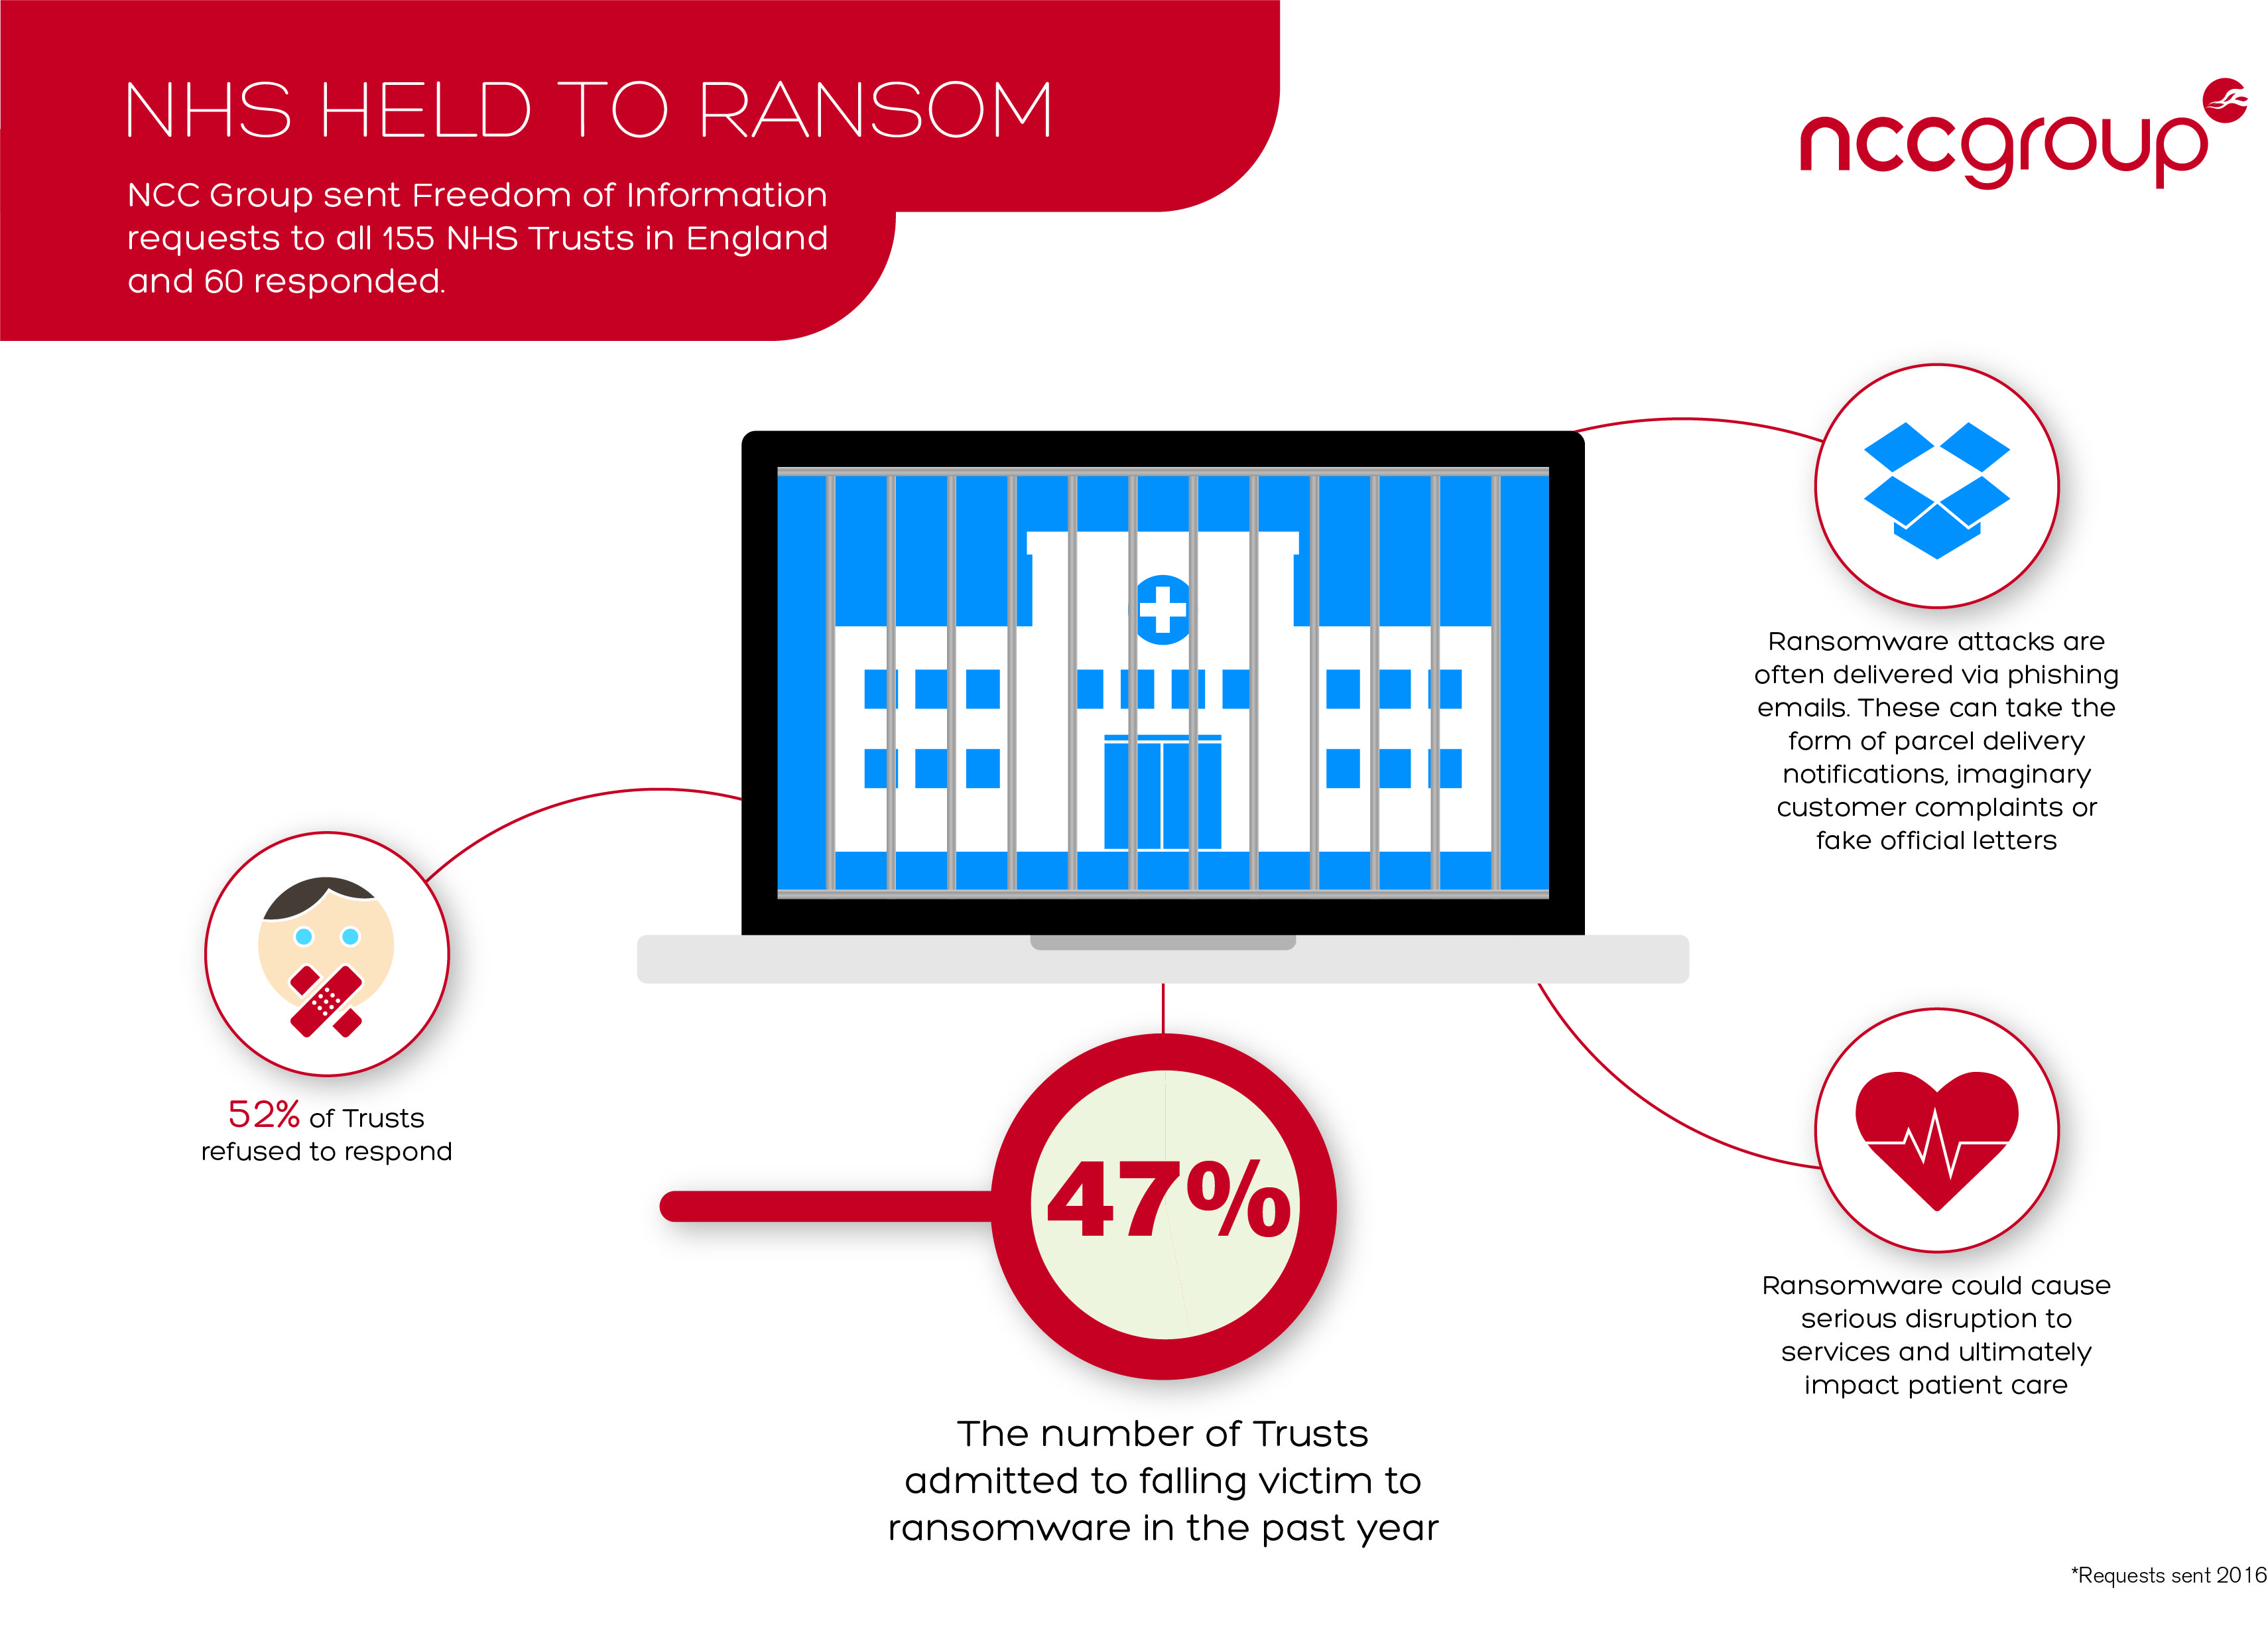 NHS Held To Ransom Infographic